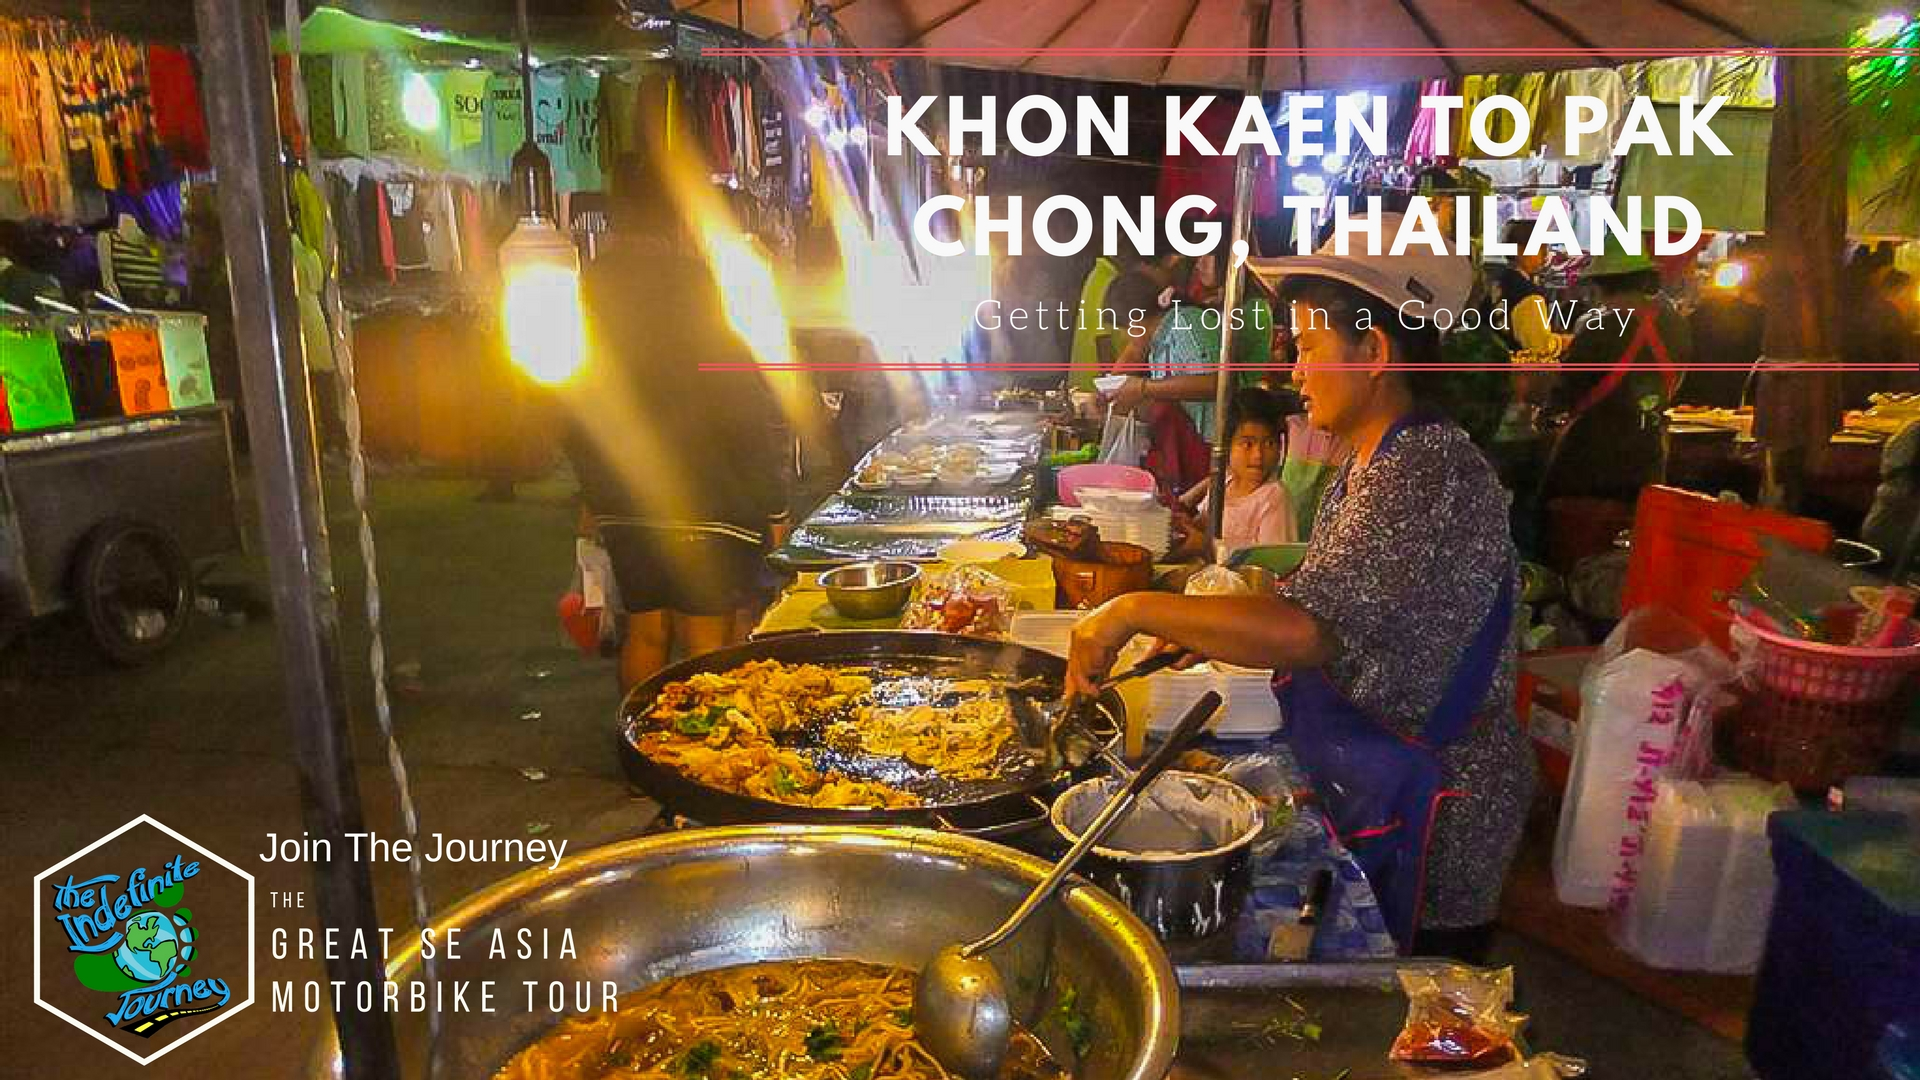 Khon Kaen to Pak Chong, Thailand - Getting Lost in a Good Way